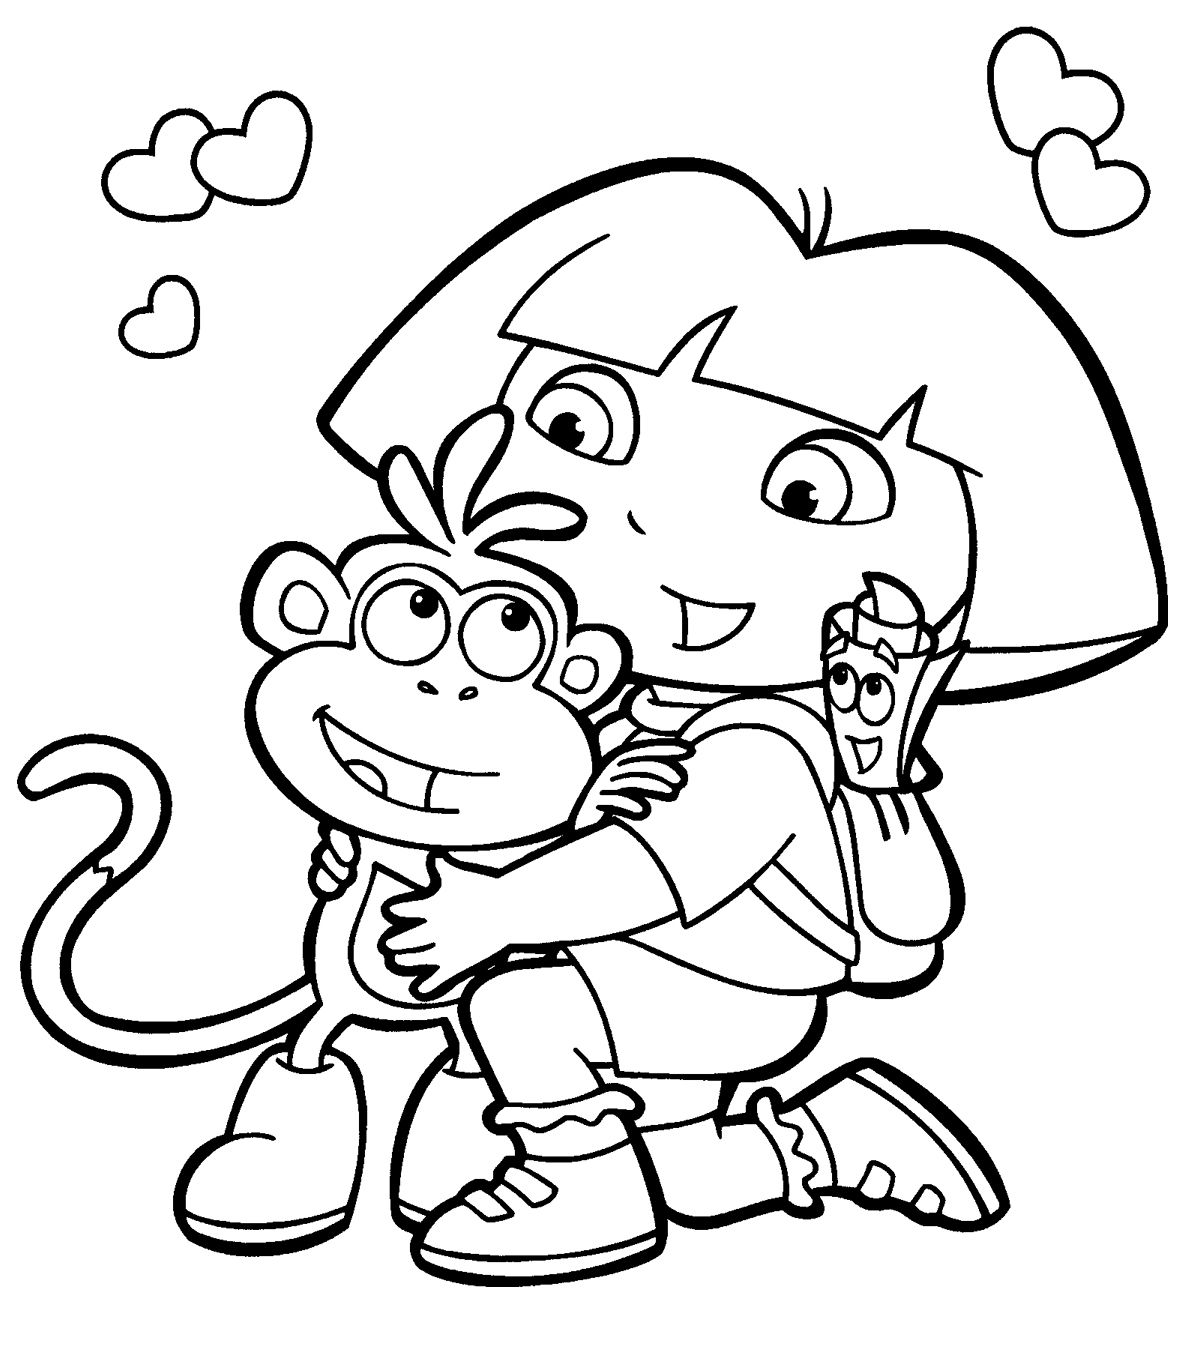 coloring book pages | Free Nickjr\'s Dora the Explorer Coloring Book ...